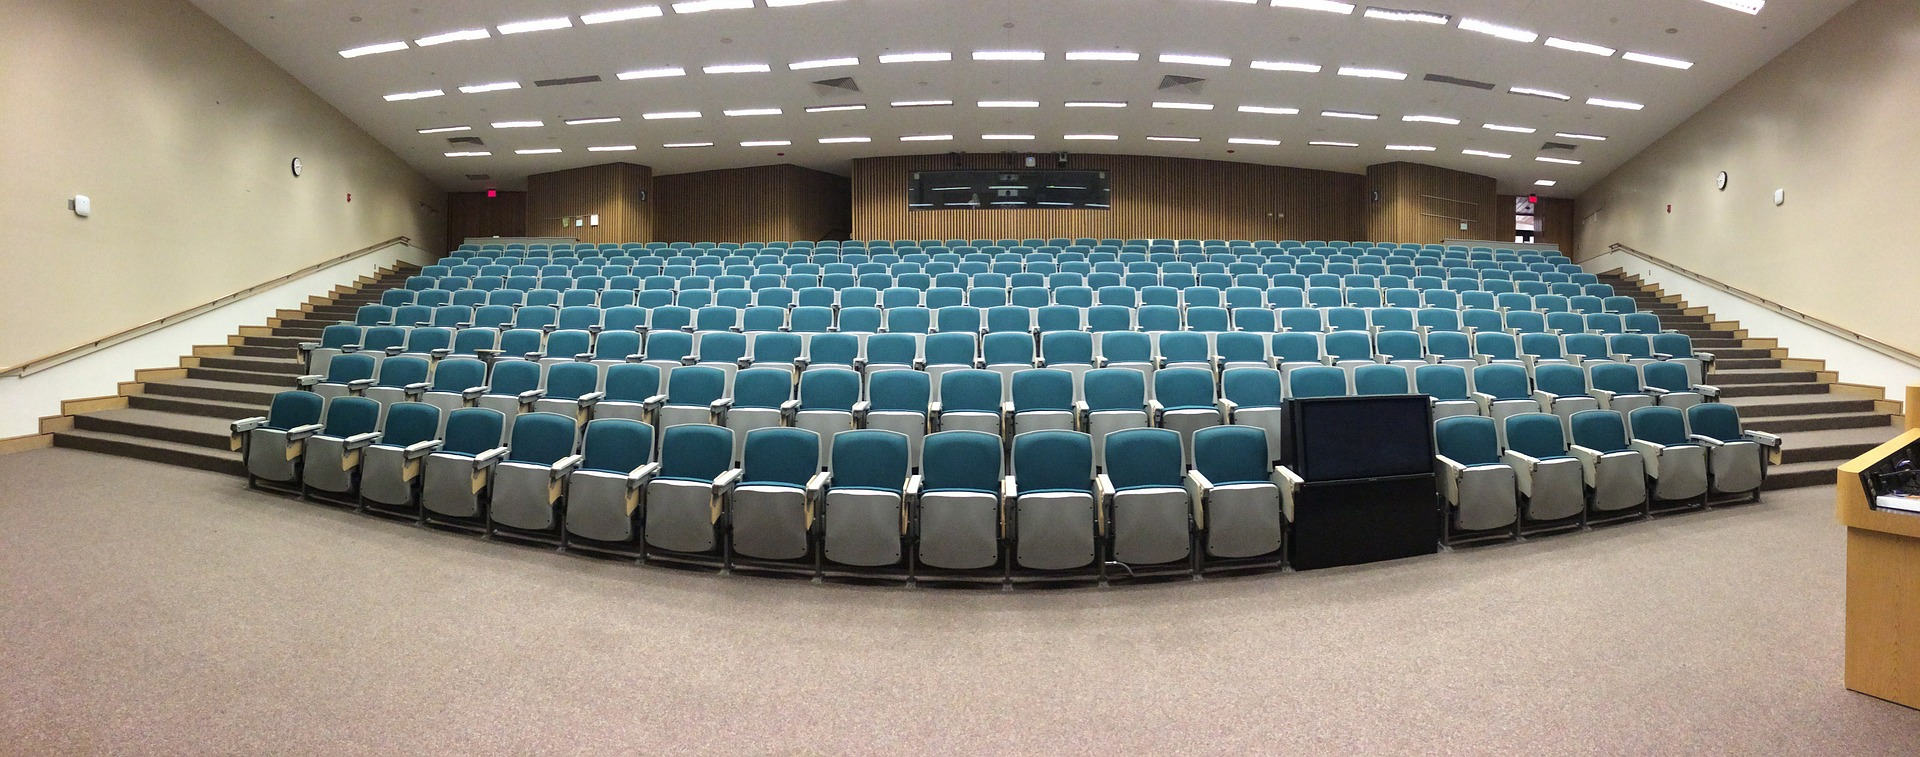 Auditorium for various activities-Facilities provided by PIA